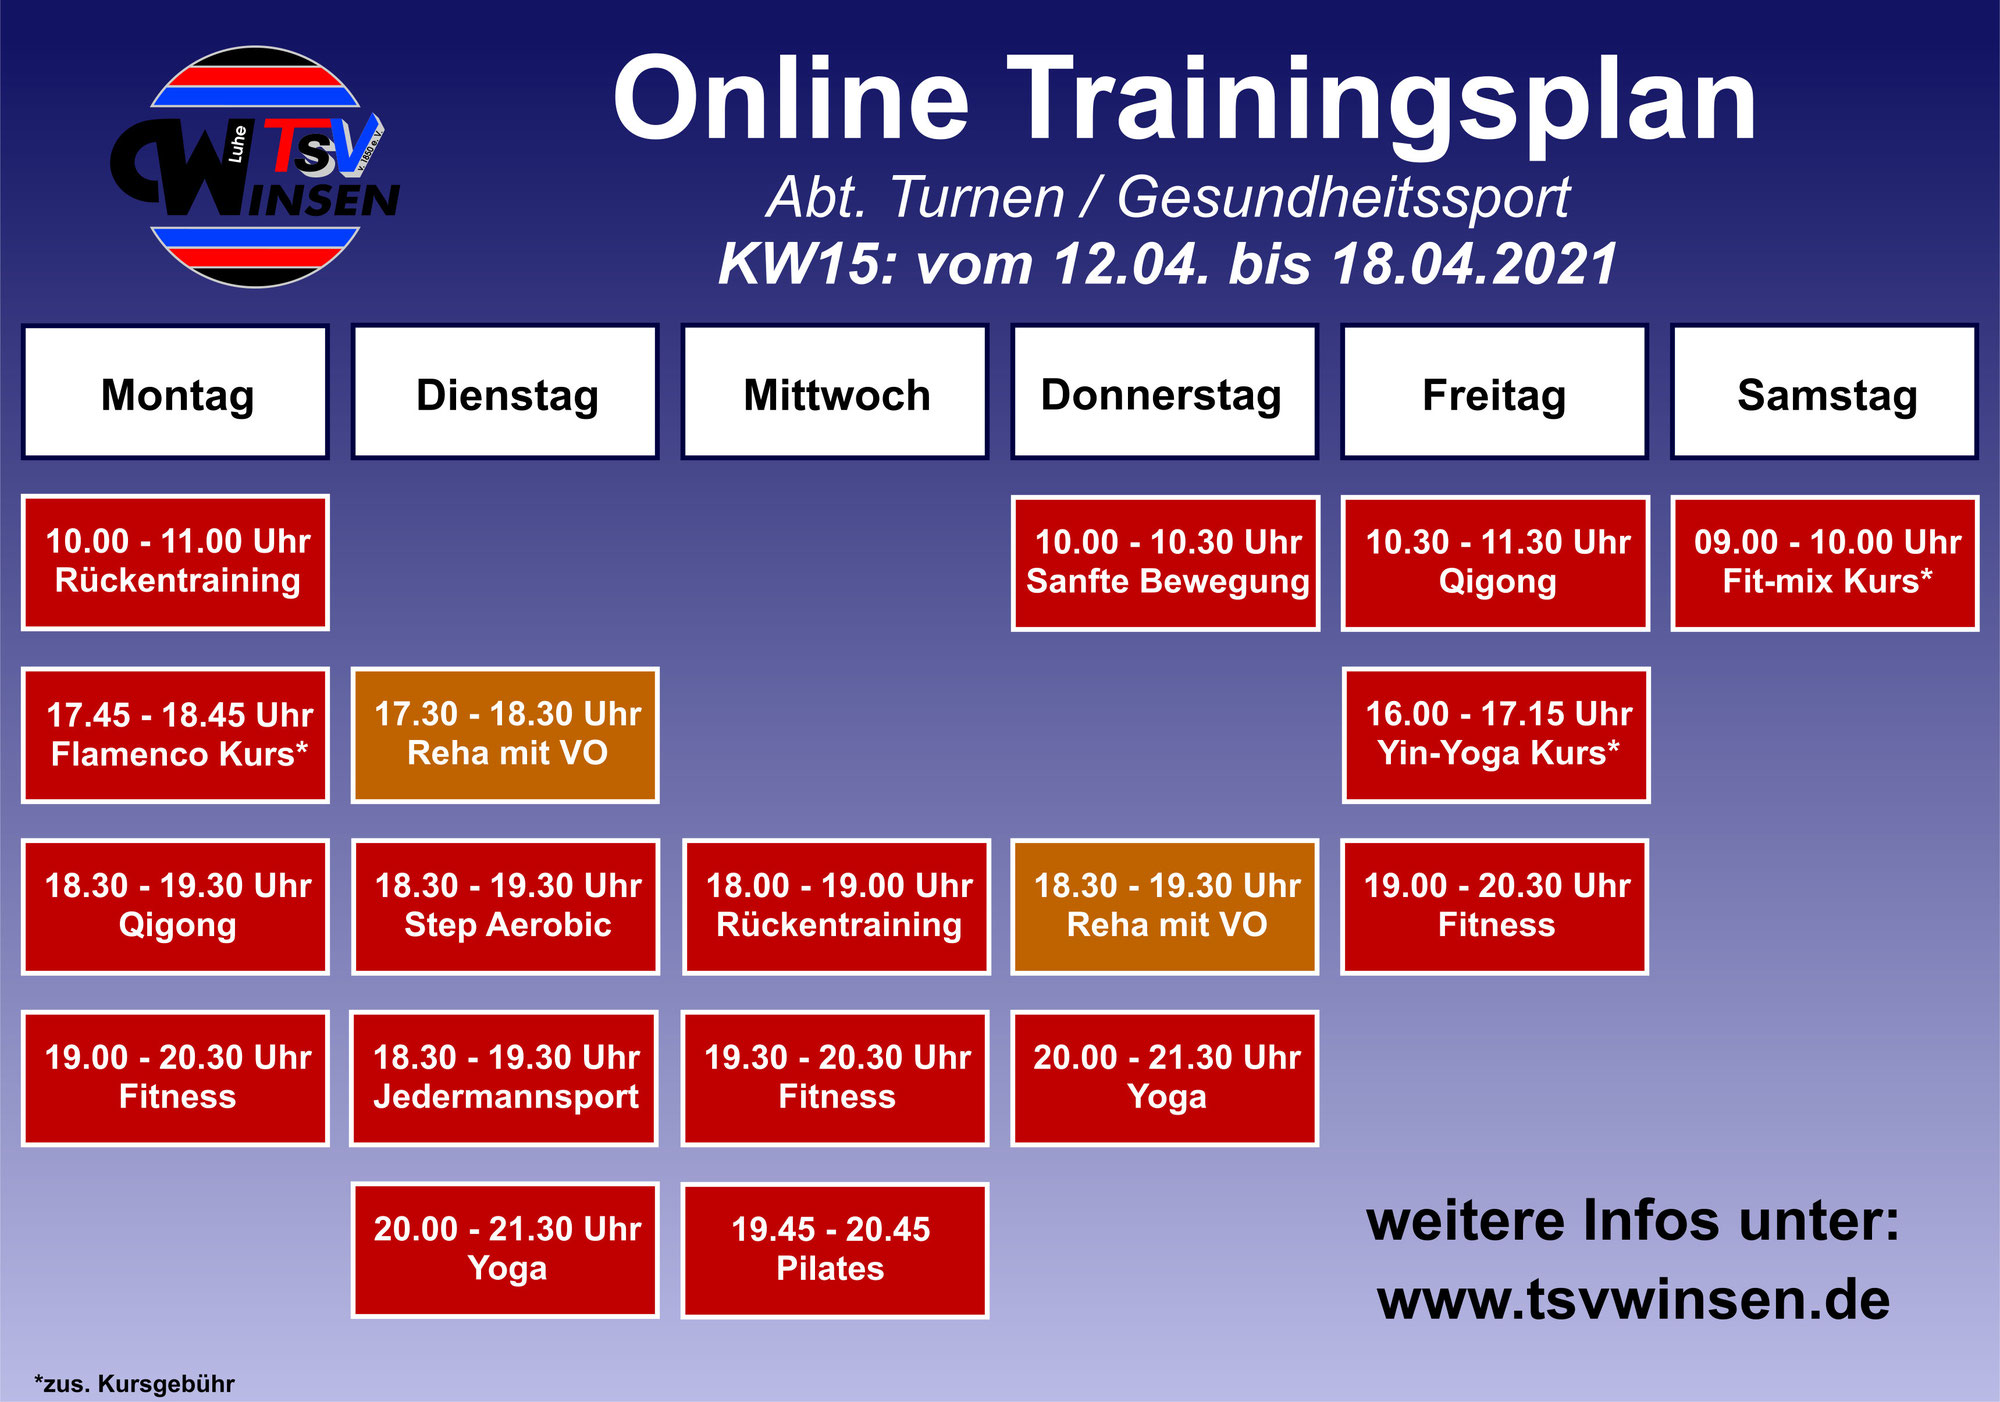 Trainingsplan vom 12.04.-18.04.